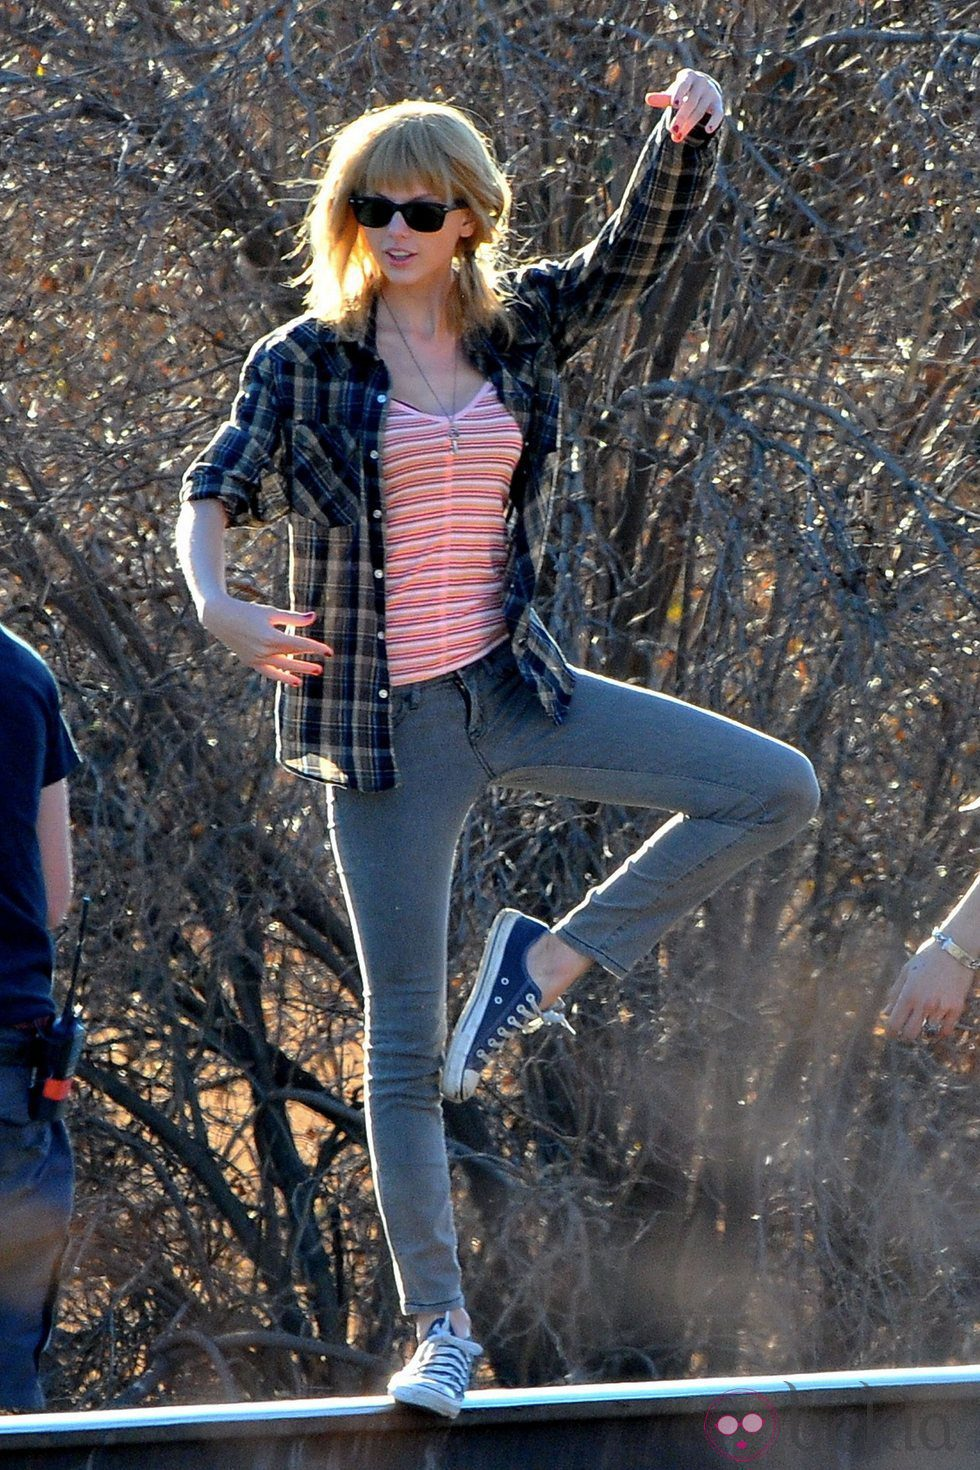 Taylor Swift durante el rodaje de su nuevo videoclip, 'I Knew You Were Trouble'